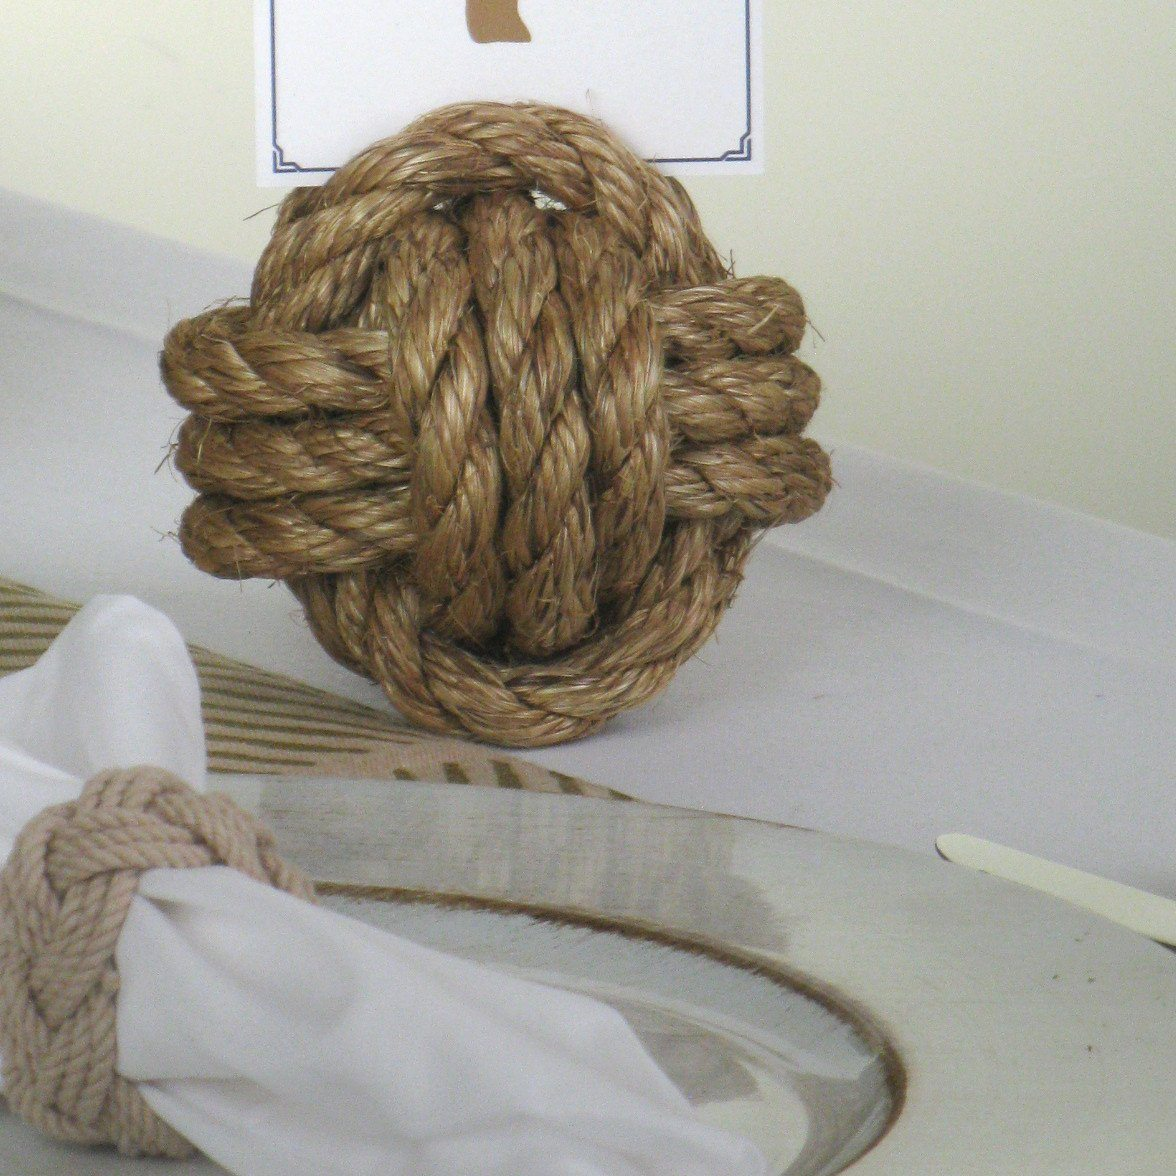 "Nautical Nautical Knot Card Holder, Manila, 4"", 3-Pass Handmade sailor knot American Made in Mystic, CT $ 8.55"